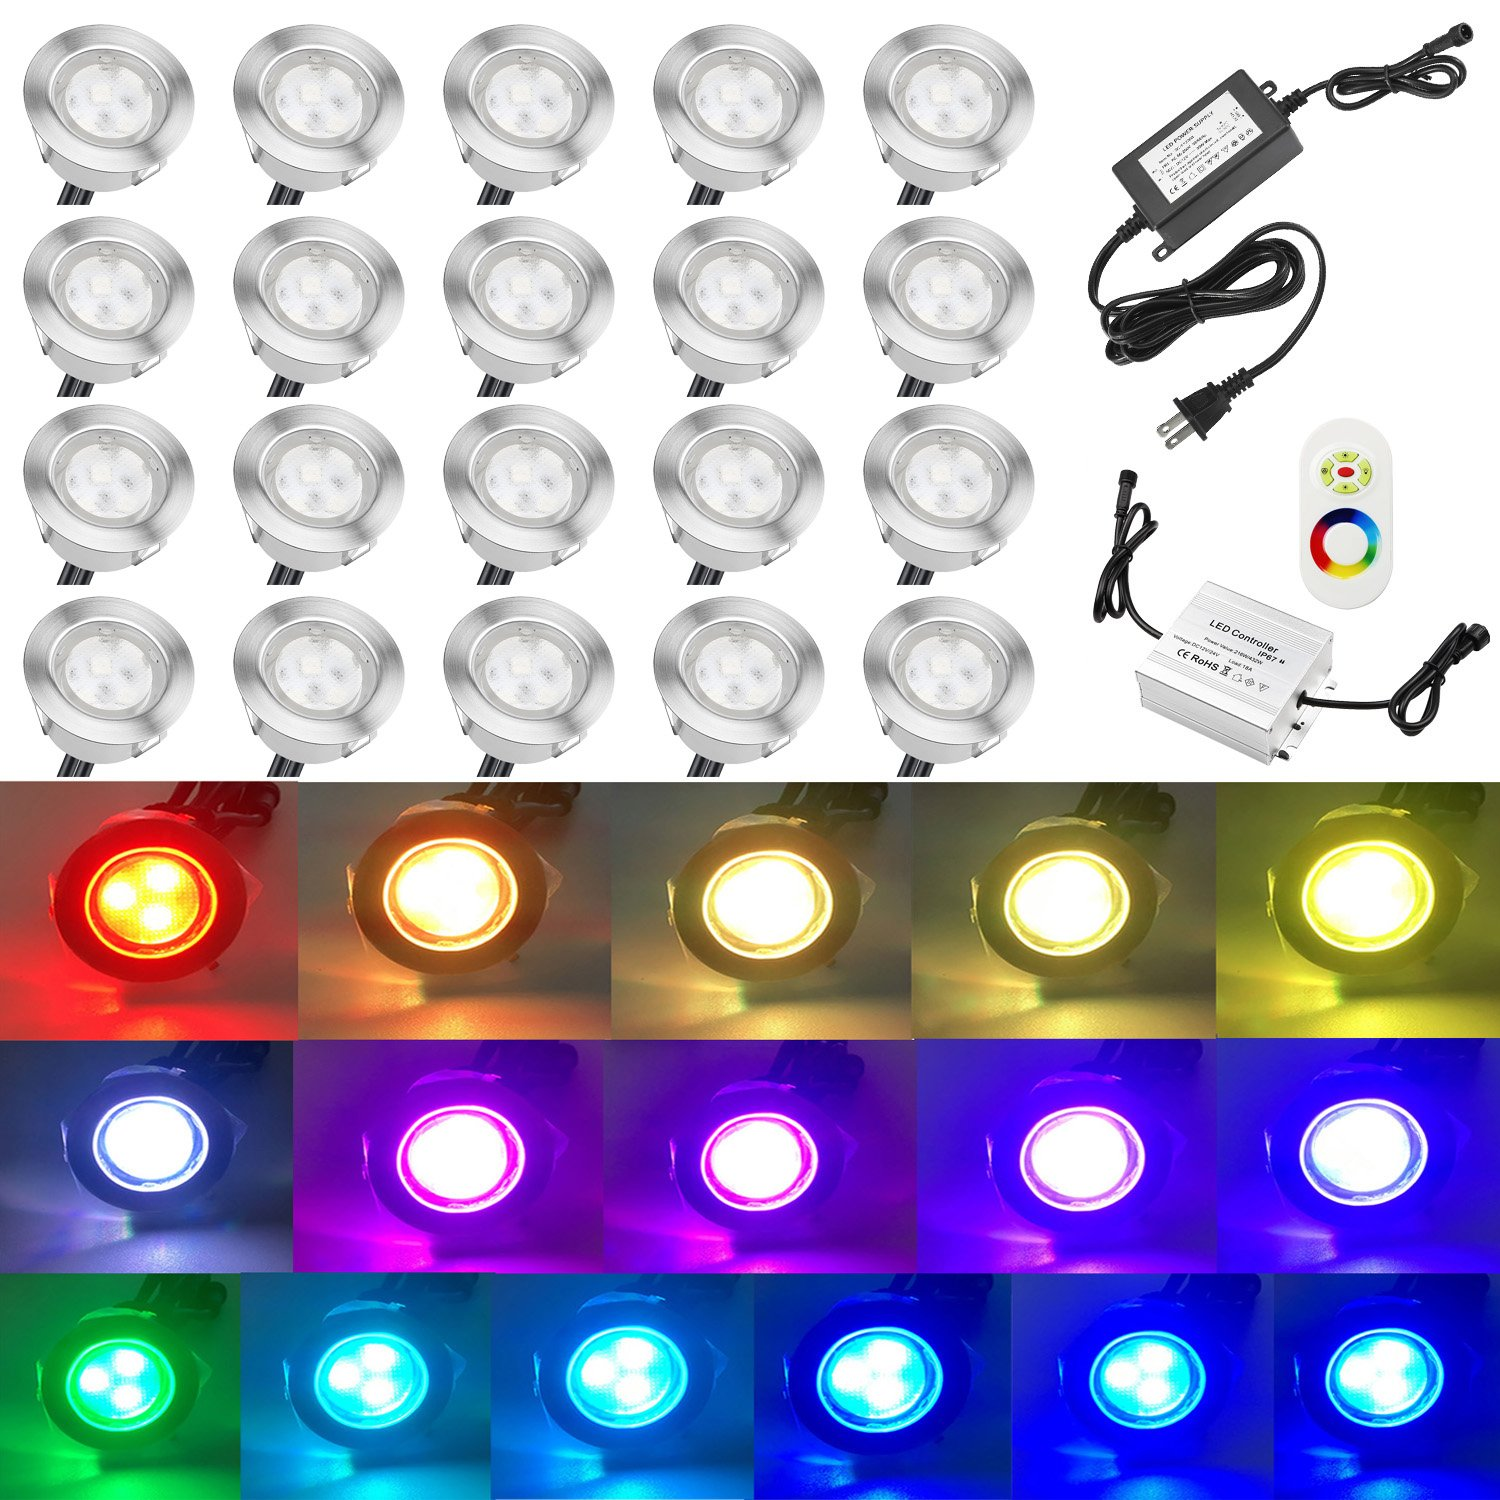 QACA 20pcs Low Voltage LED Deck Lights Kits Multi-color RGB Stainless Steel Waterproof Outdoor Yard Garden Recessed Wood Decoration Lamps Landscape Pathway Patio Step Stairs LED In-ground Lighting by QACA